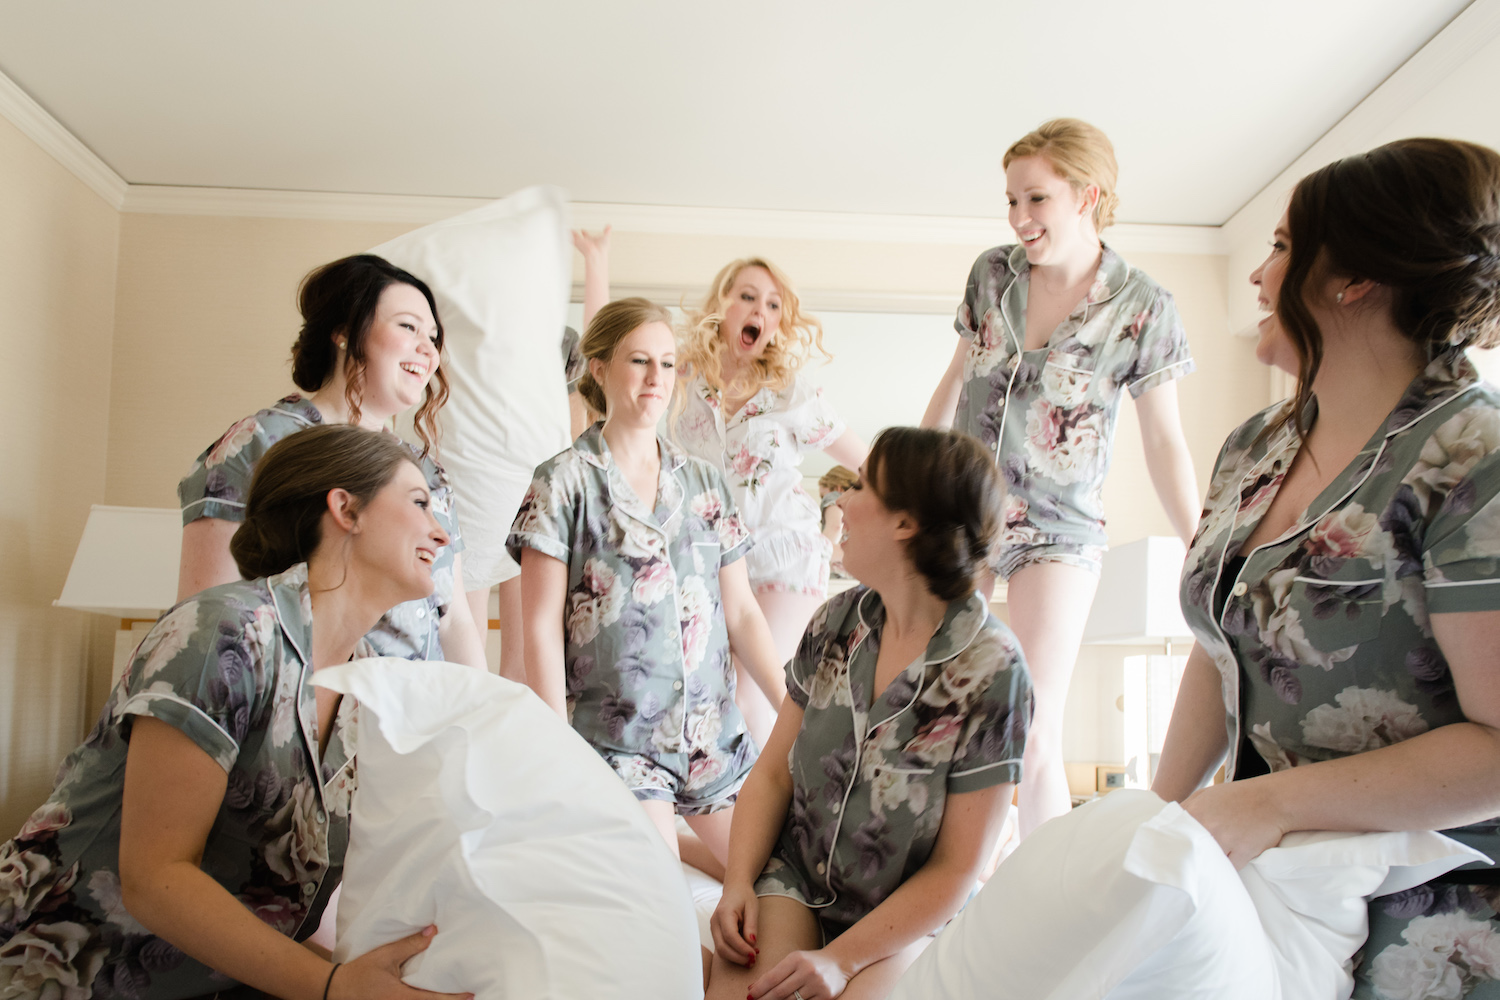 The brides and her bridesmaids kicked off the day with a pillow fight in the bridal suite. We can't help but note how the colors throughout the entire day coordinated - from the floral satin pajama sets of the bridesmaids to the reception florals. Well done, Margie!